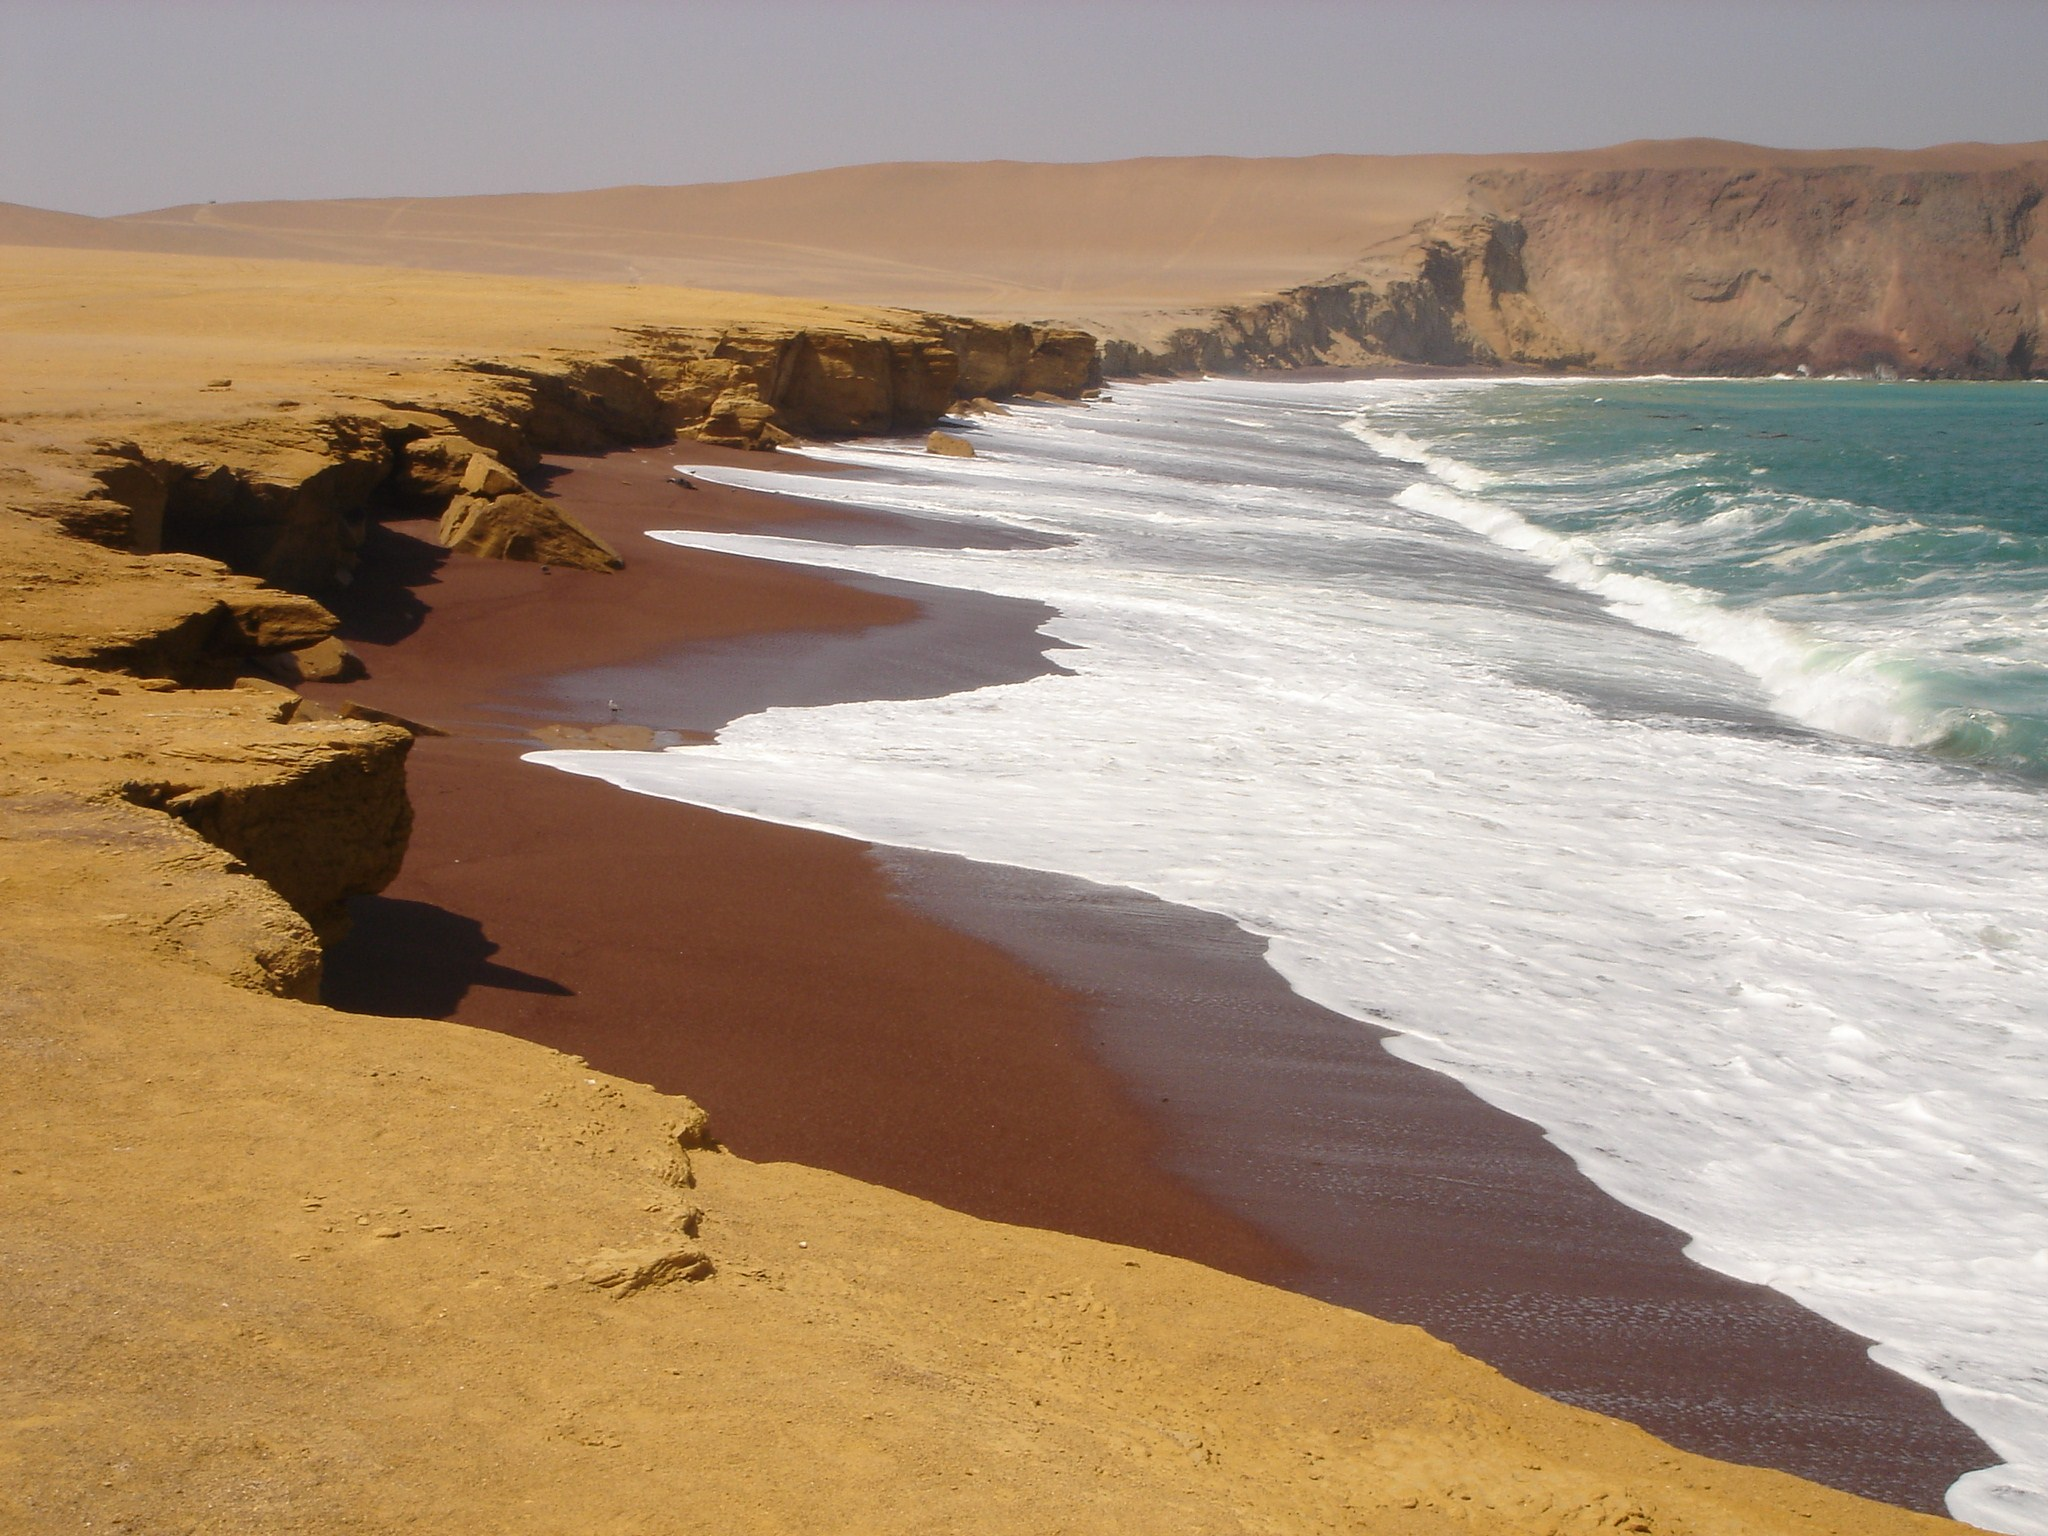 Playa roja, réserve de Paracas (photo Flickr / cc by Vicente González Camacho)